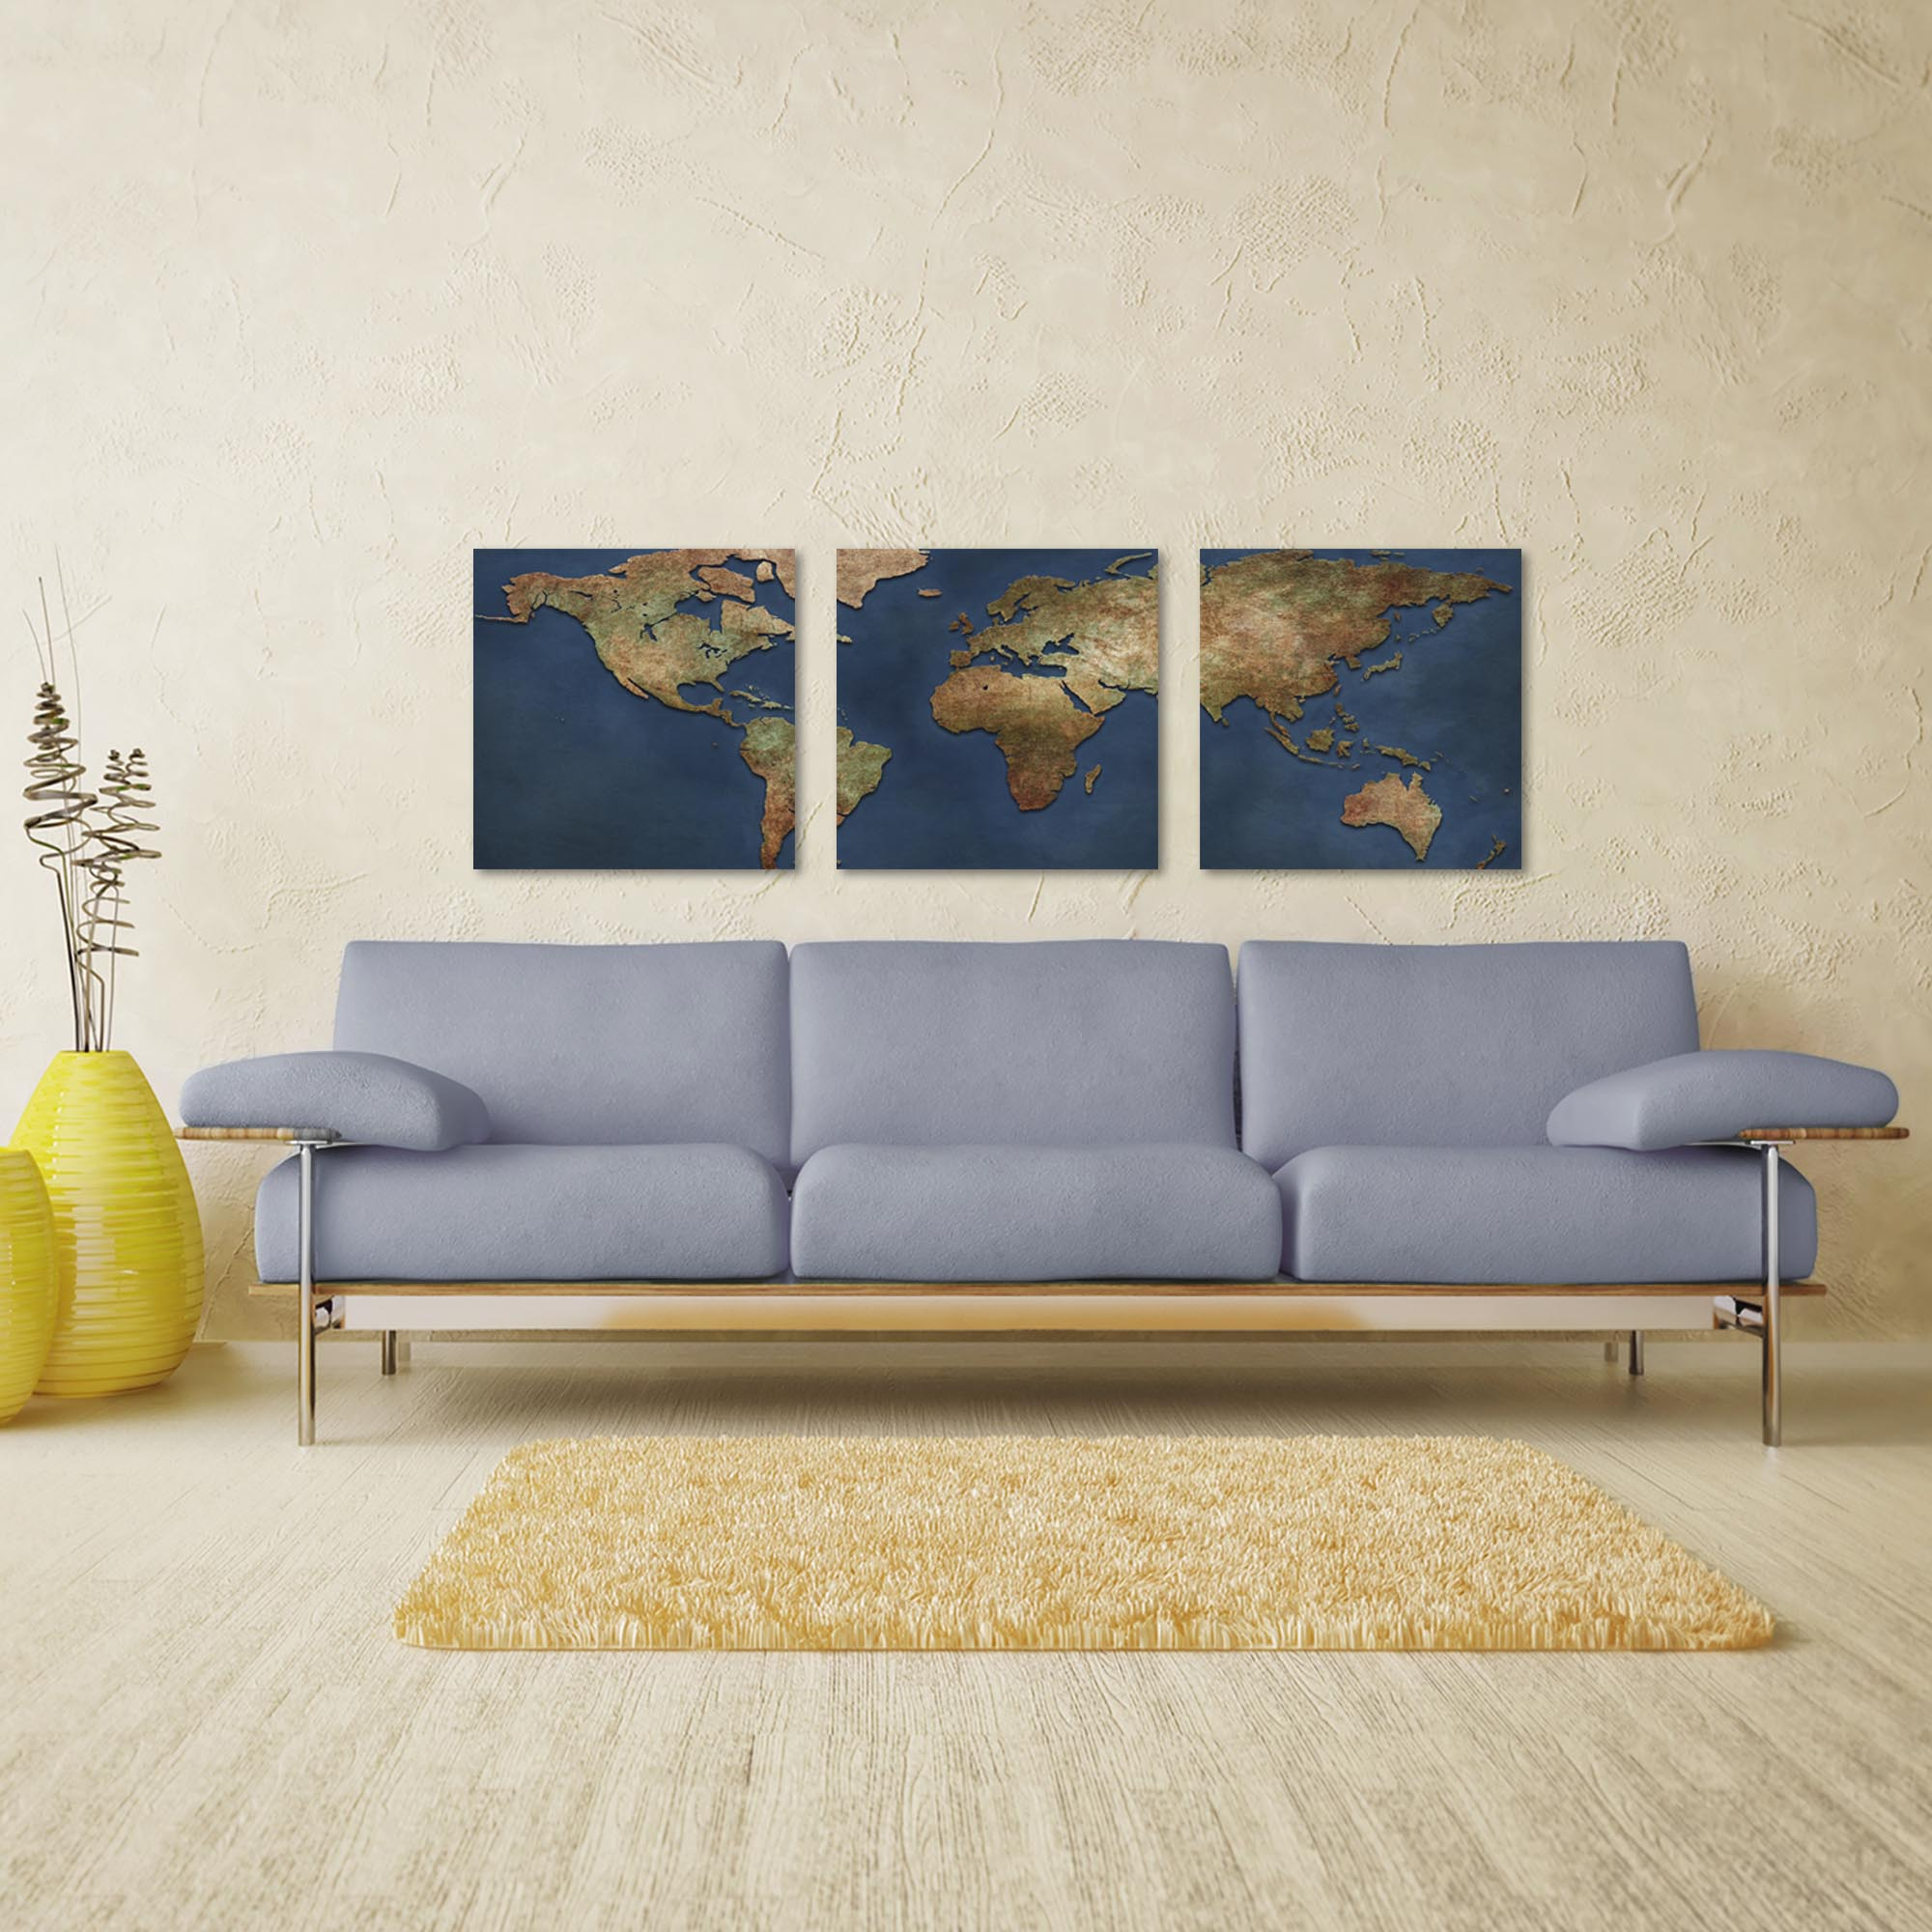 1800s World Map Triptych Large 70x22in. Metal or Acrylic Colonial Decor - Lifestyle View